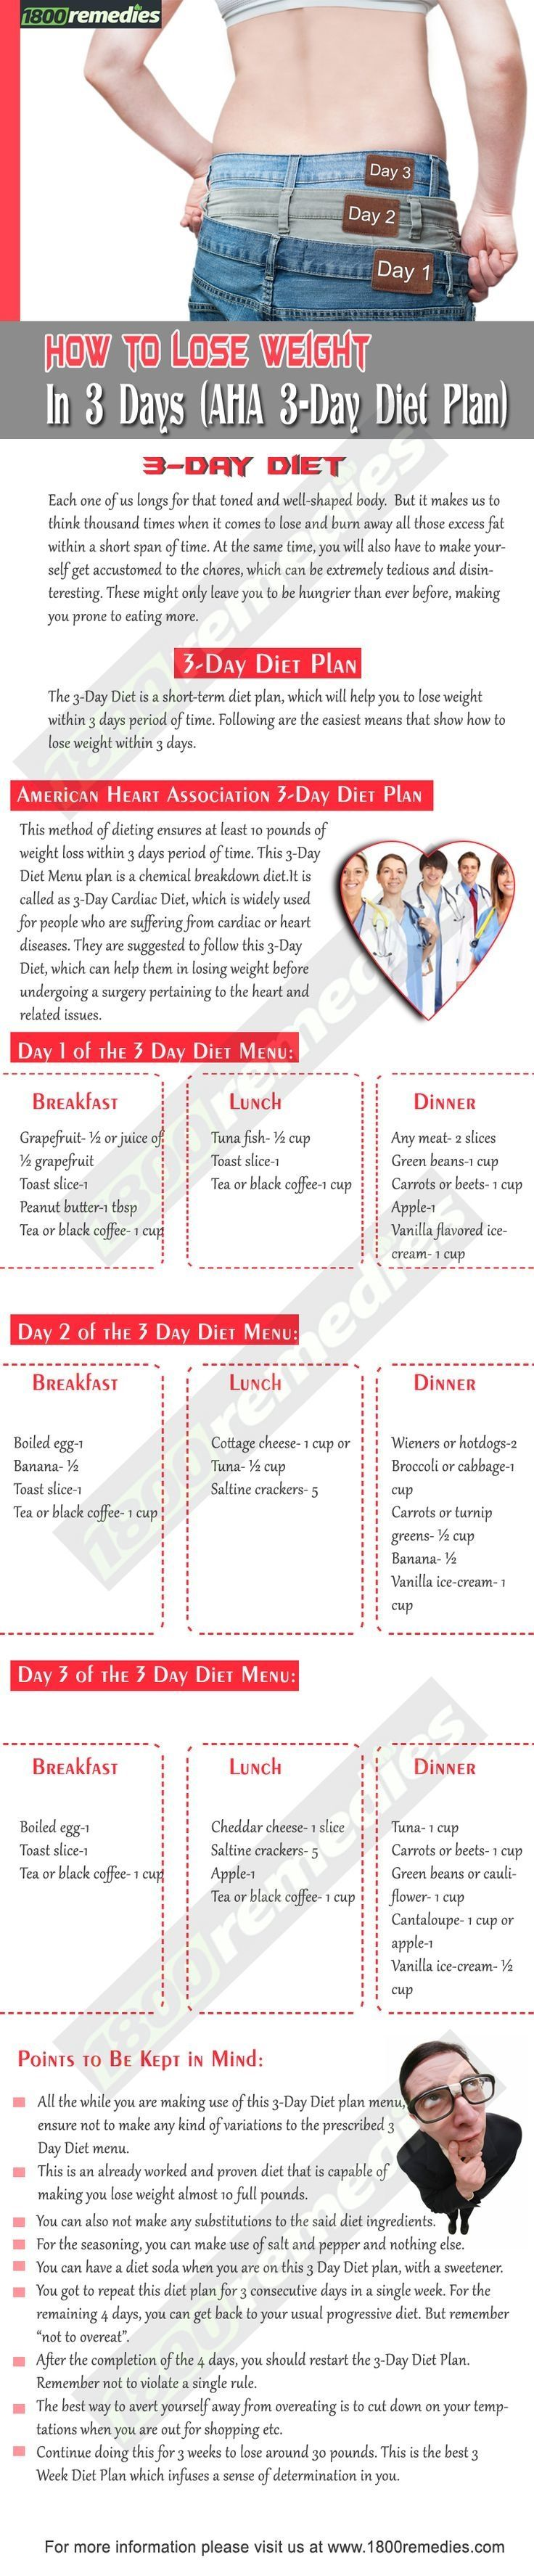 how to lose weight fast plan for free